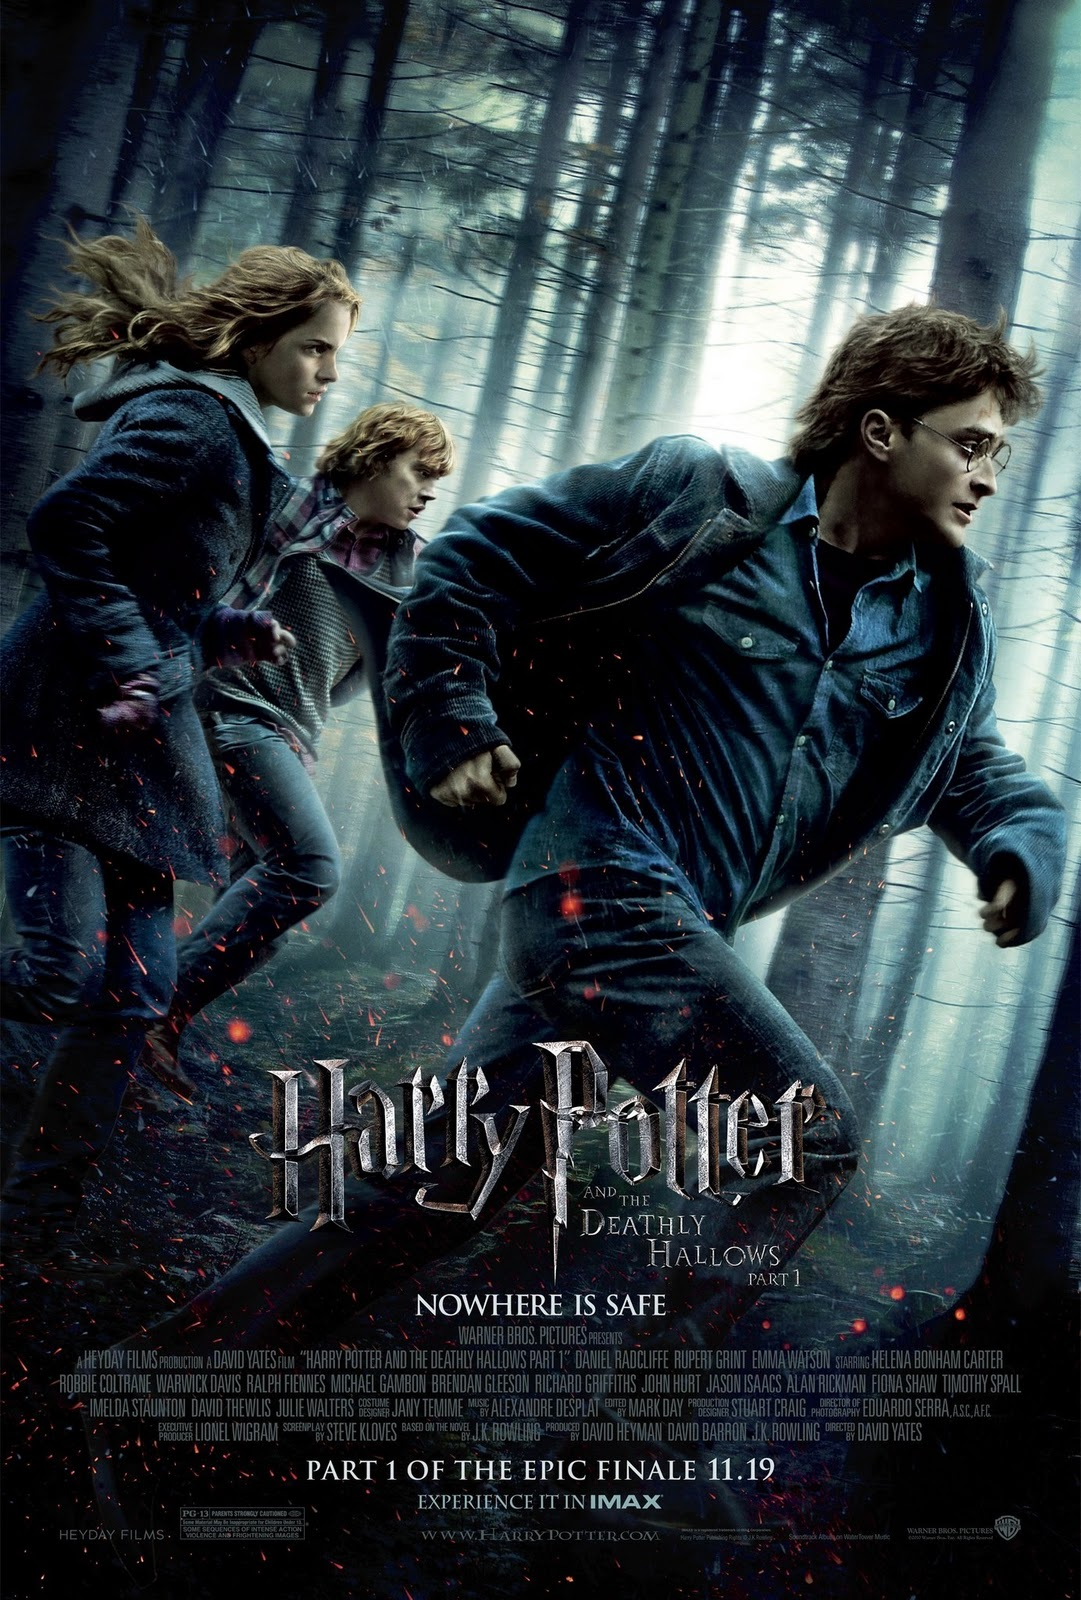 http://4.bp.blogspot.com/_GCAuqodmOE4/TPbXApJ2dLI/AAAAAAAAFFo/lcnVr2dq32U/s1600/harry_potter_and_the_deathly_hallows_part_1_movie_poster2.jpg